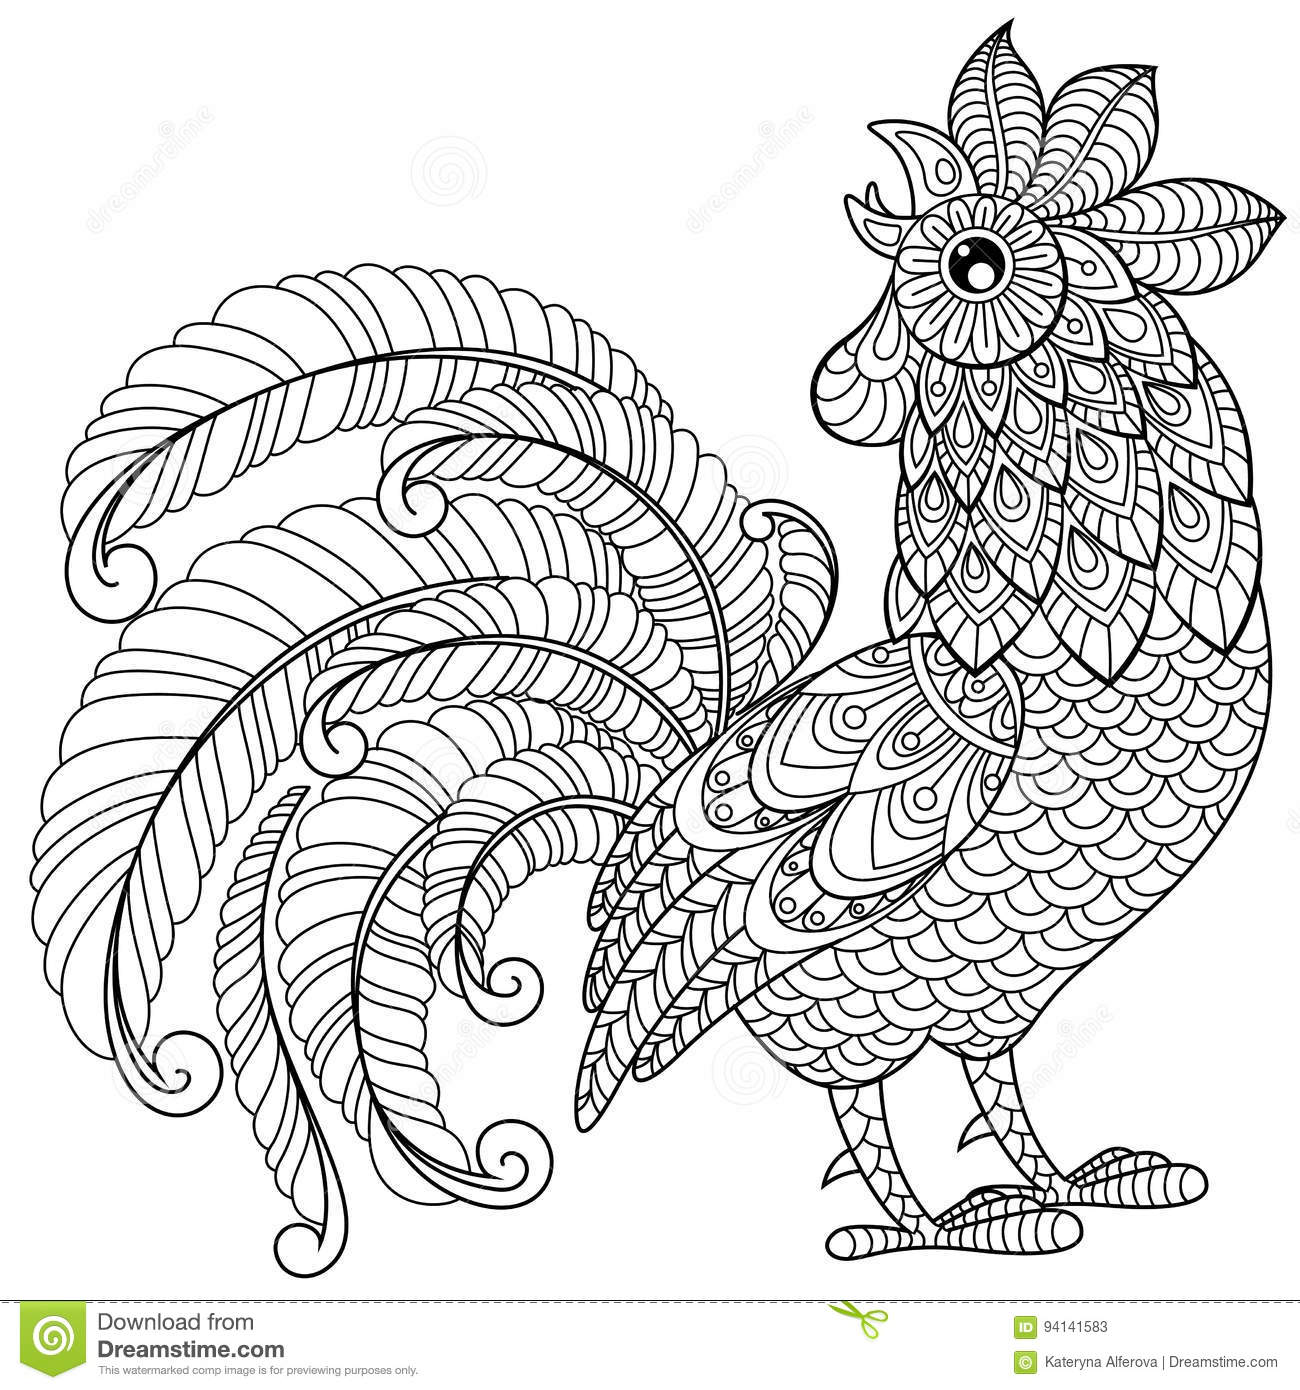 Chinese new year animal coloring pages - Symbol Of Chinese New Year 2017 Adult Antistress Coloring Page